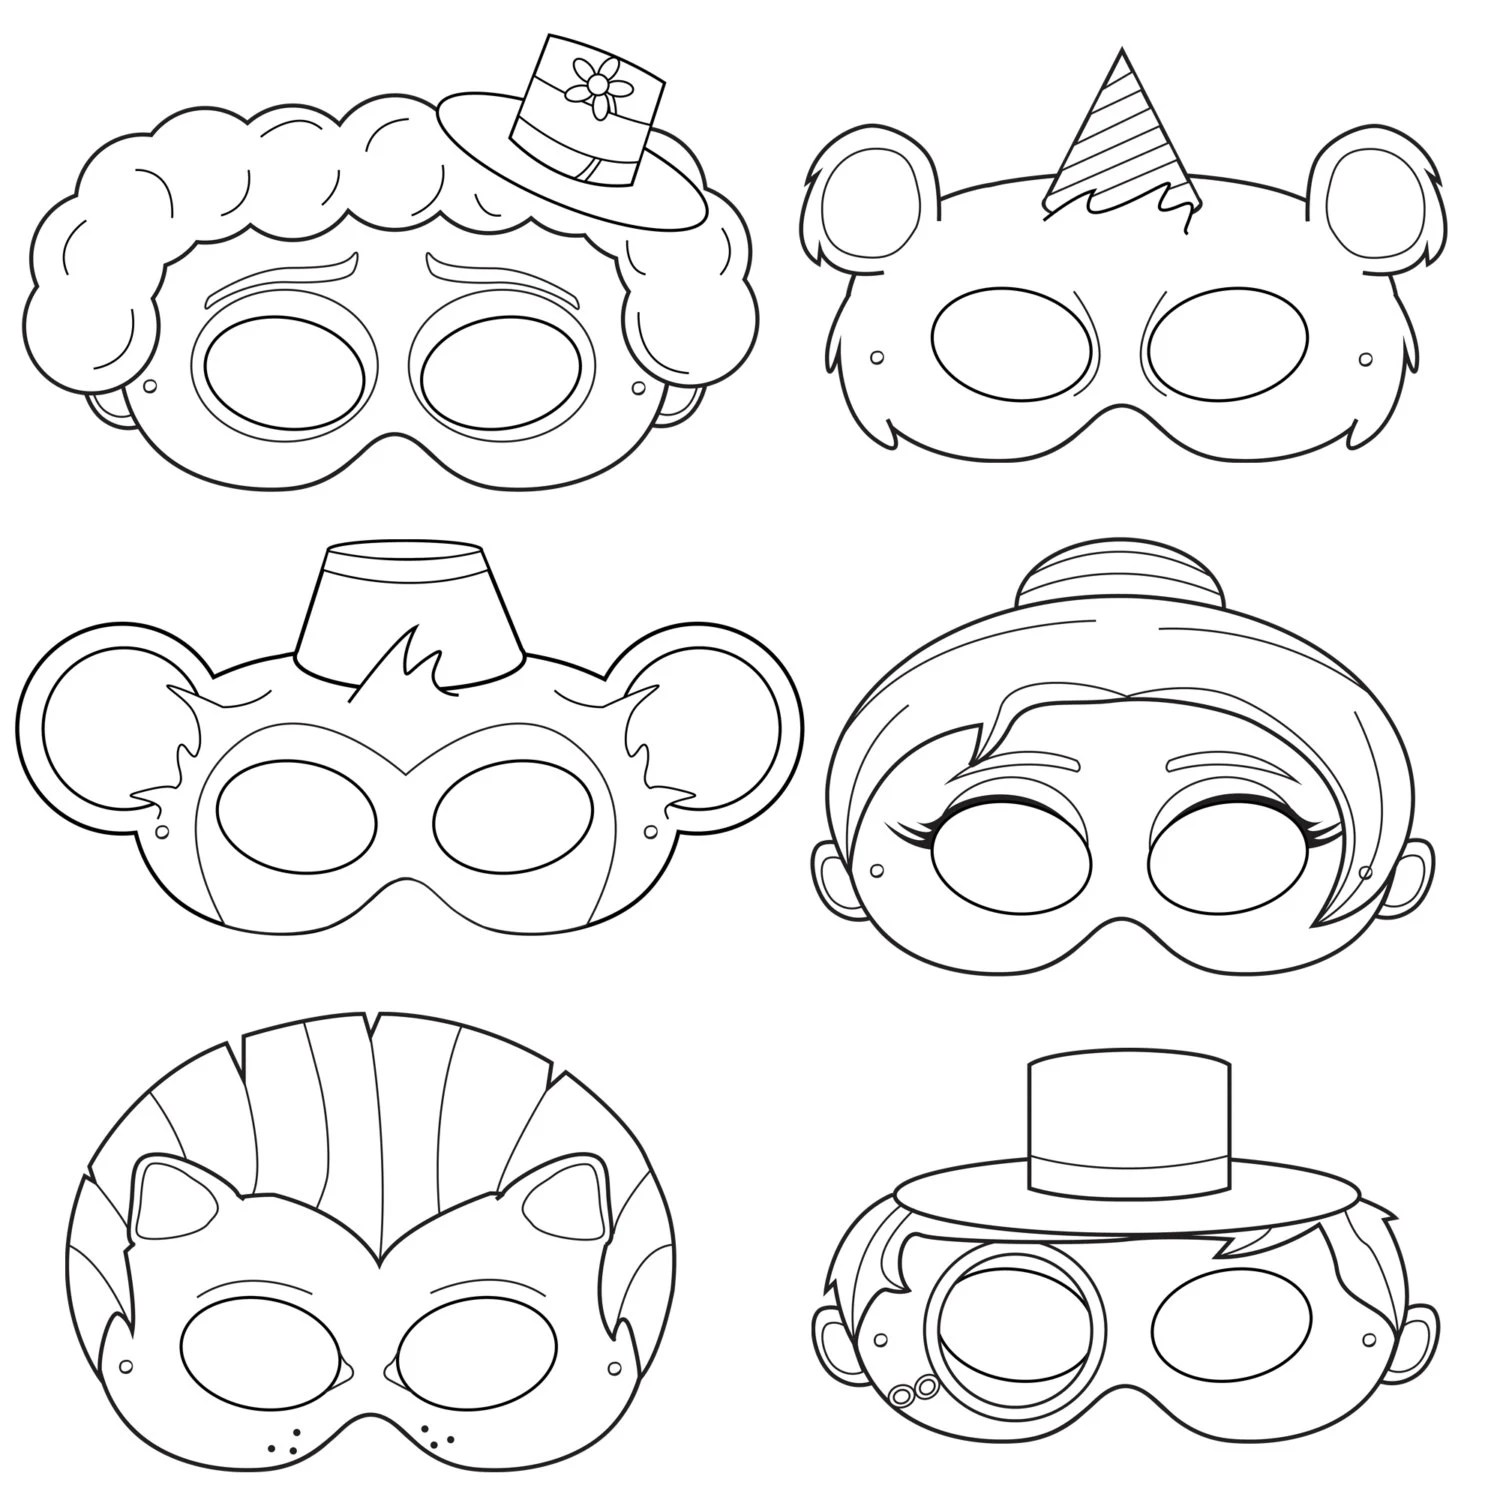 Circus Printable Coloring Masks clown mask bear mask